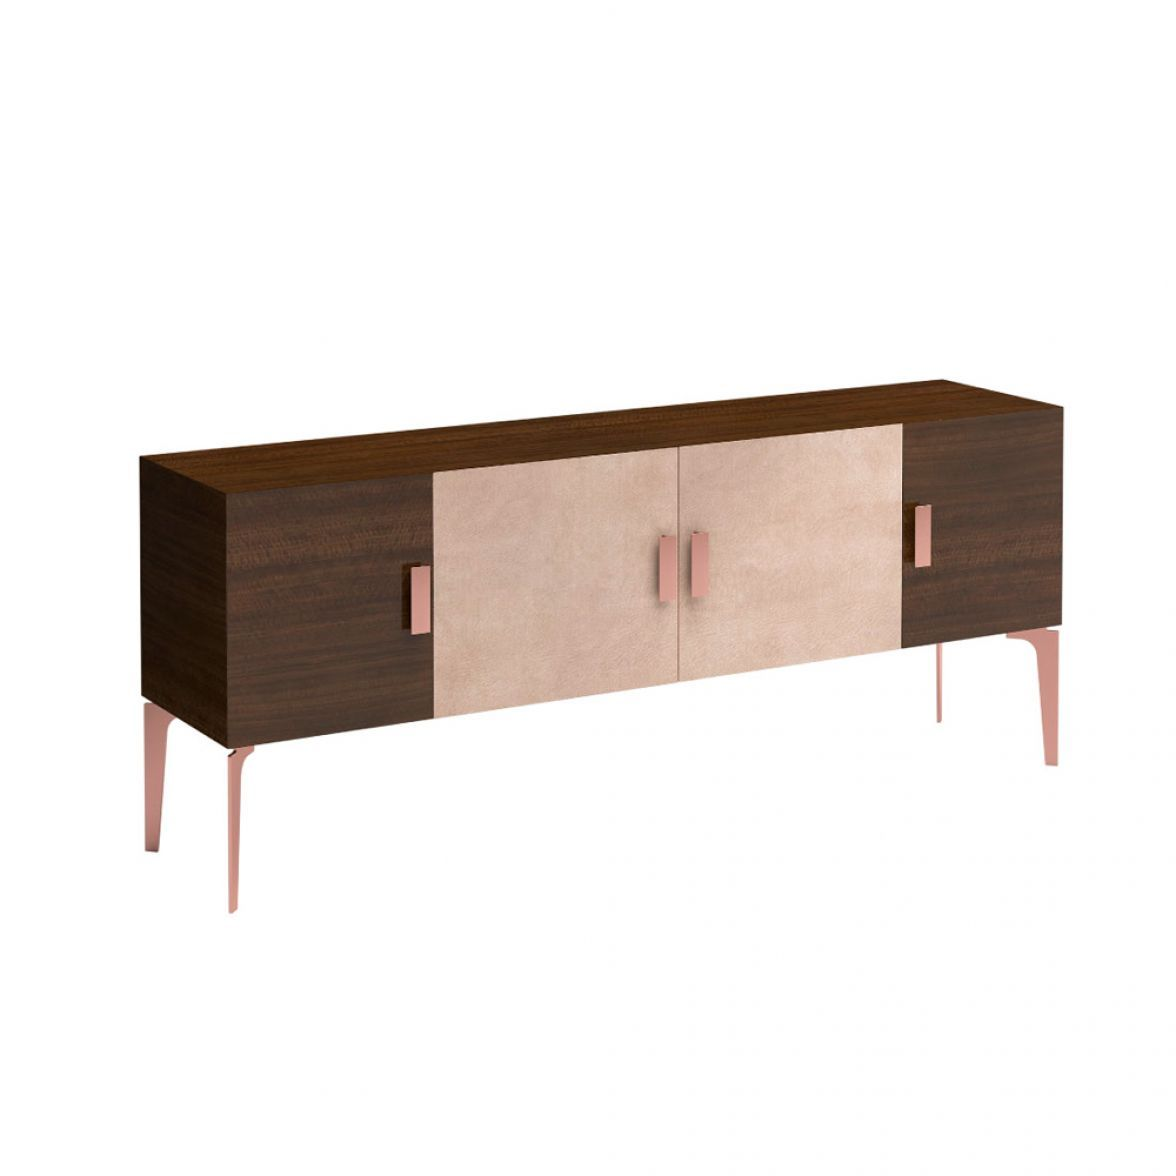 Eclectic XL sideboard